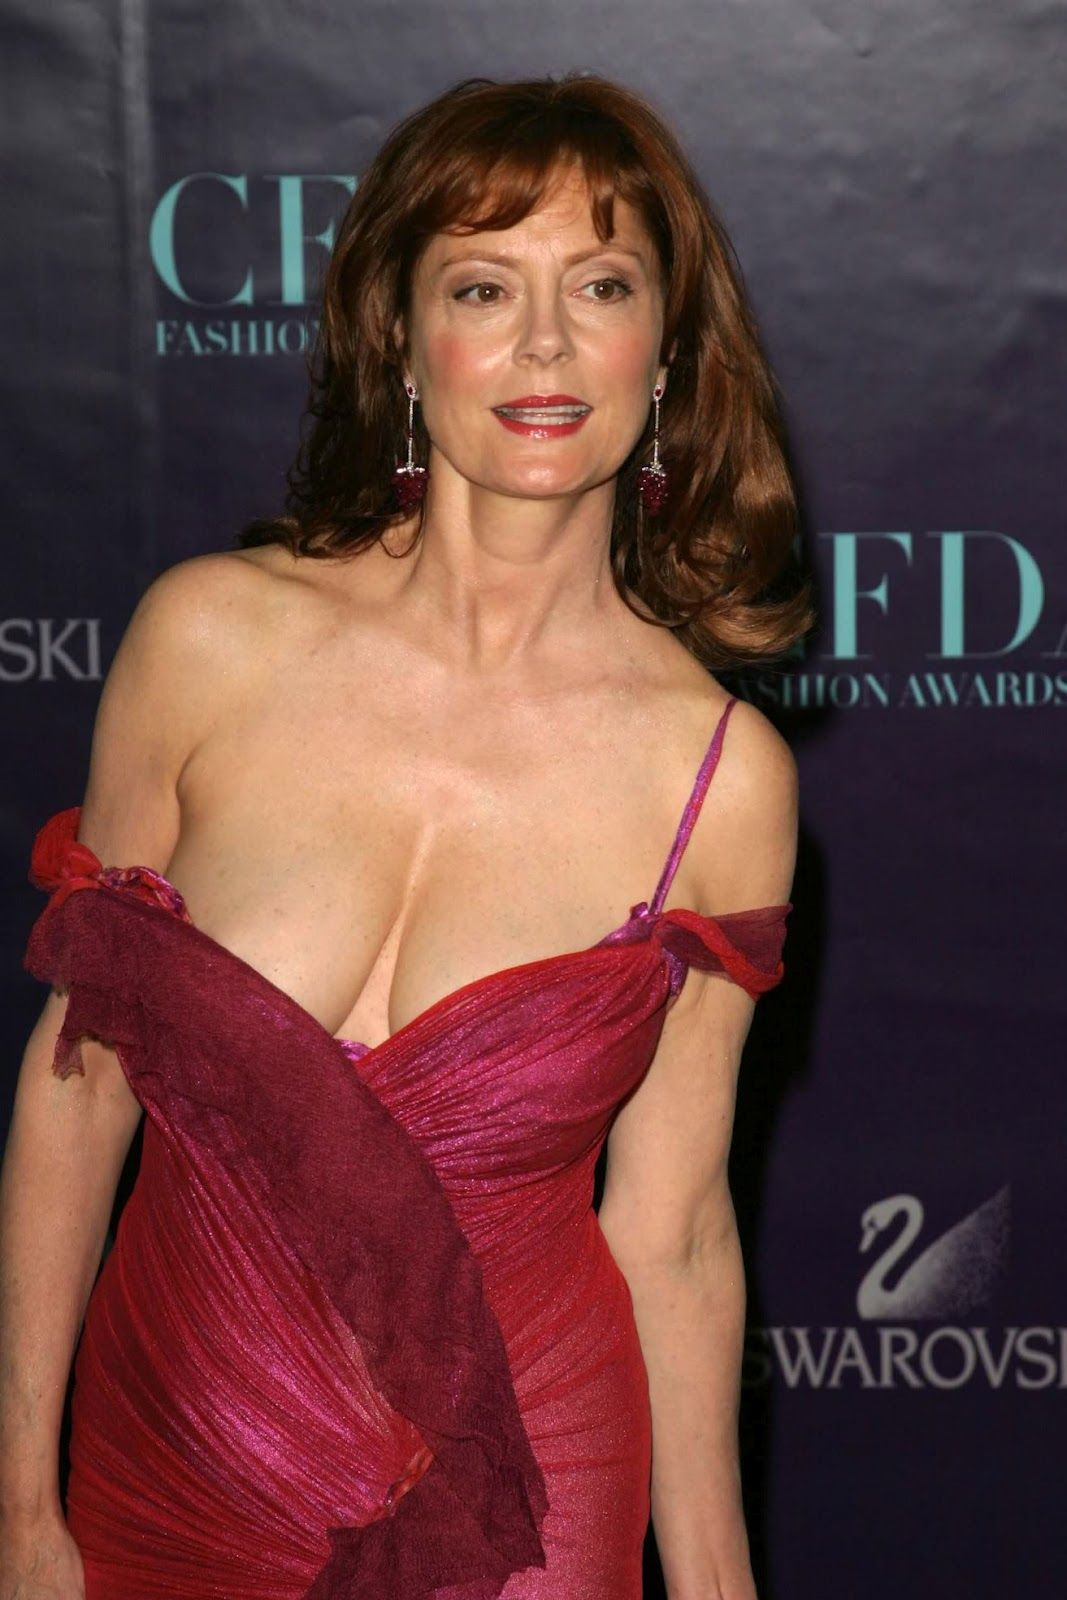 Bikini Susan Sarandon naked (62 photos), Hot